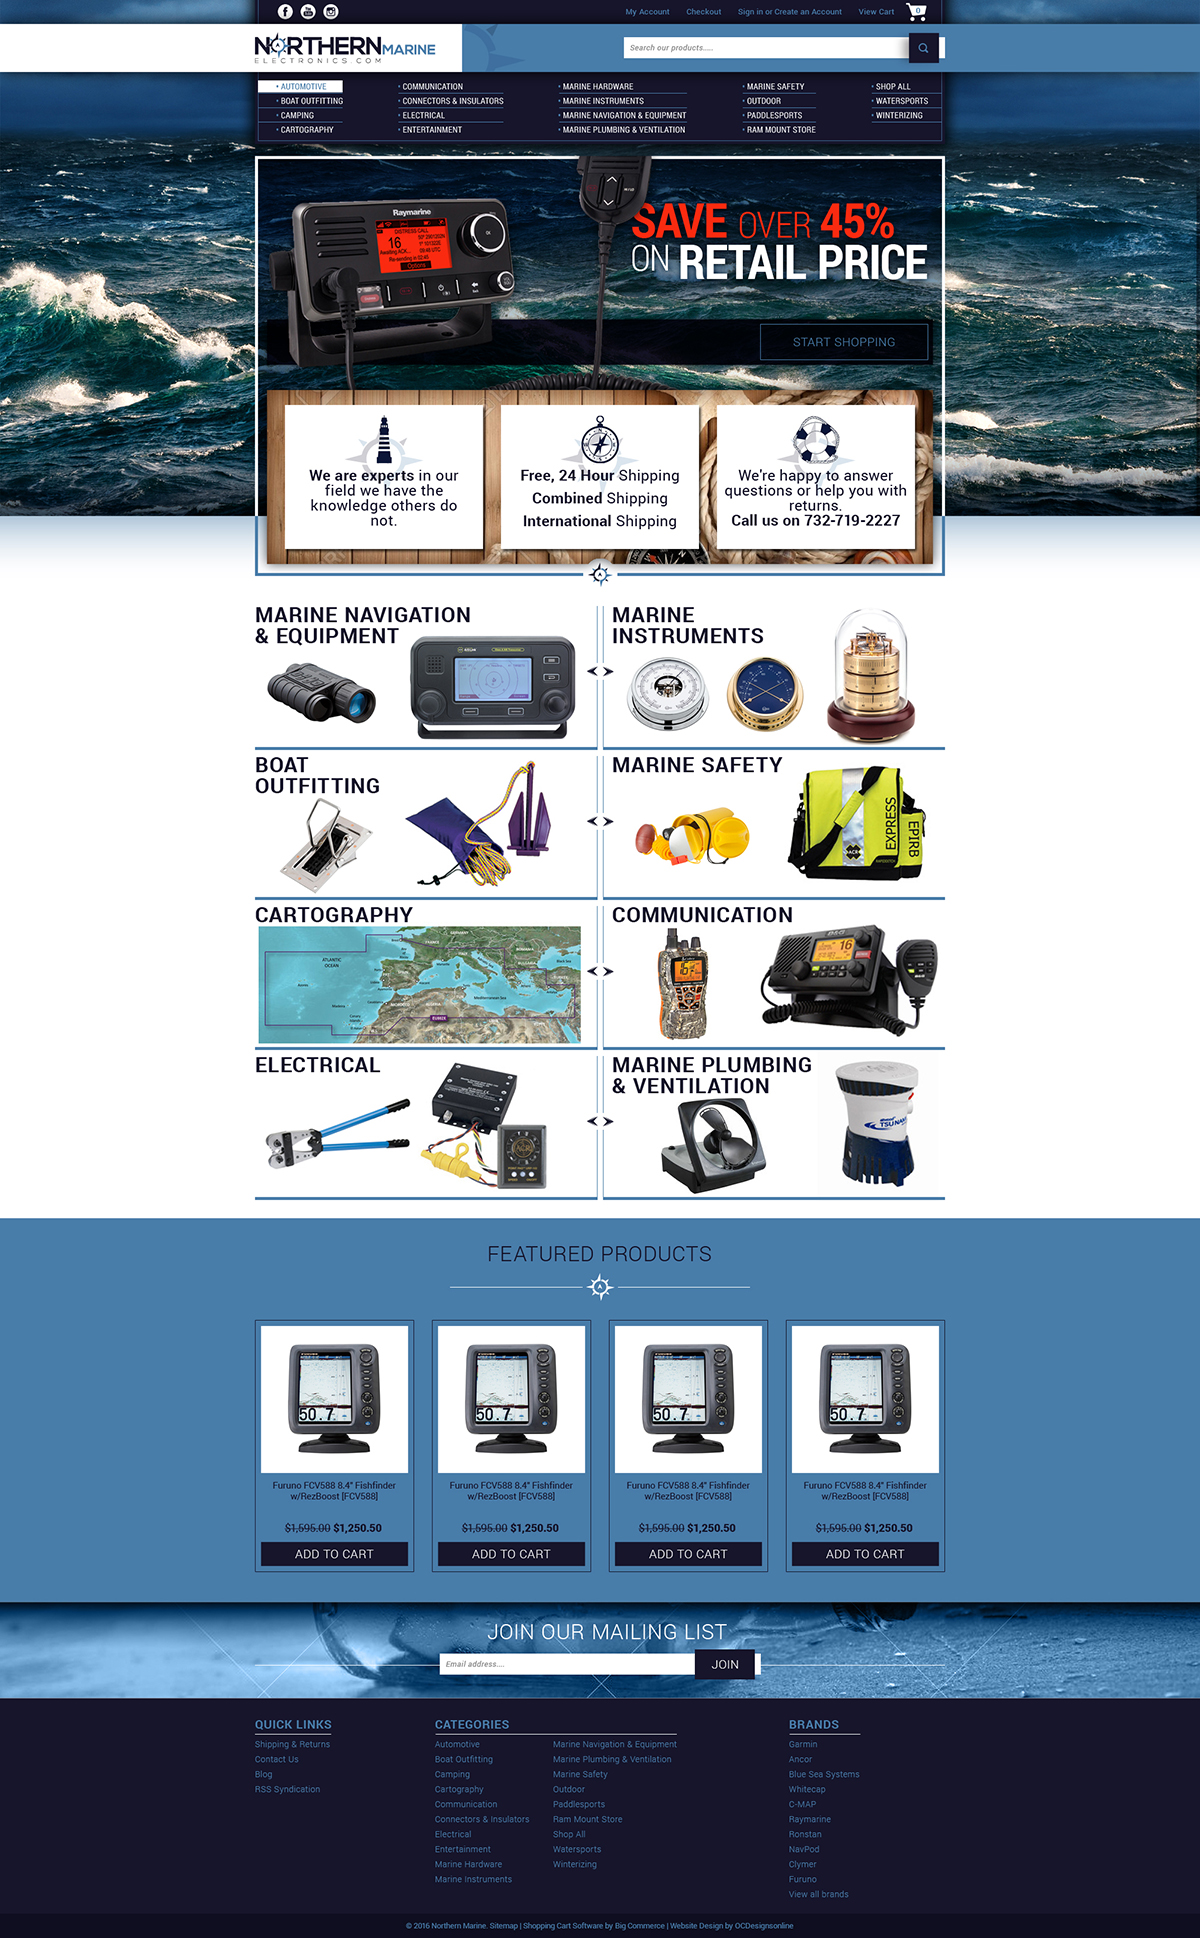 Northern Marine bigcommerce custom store design